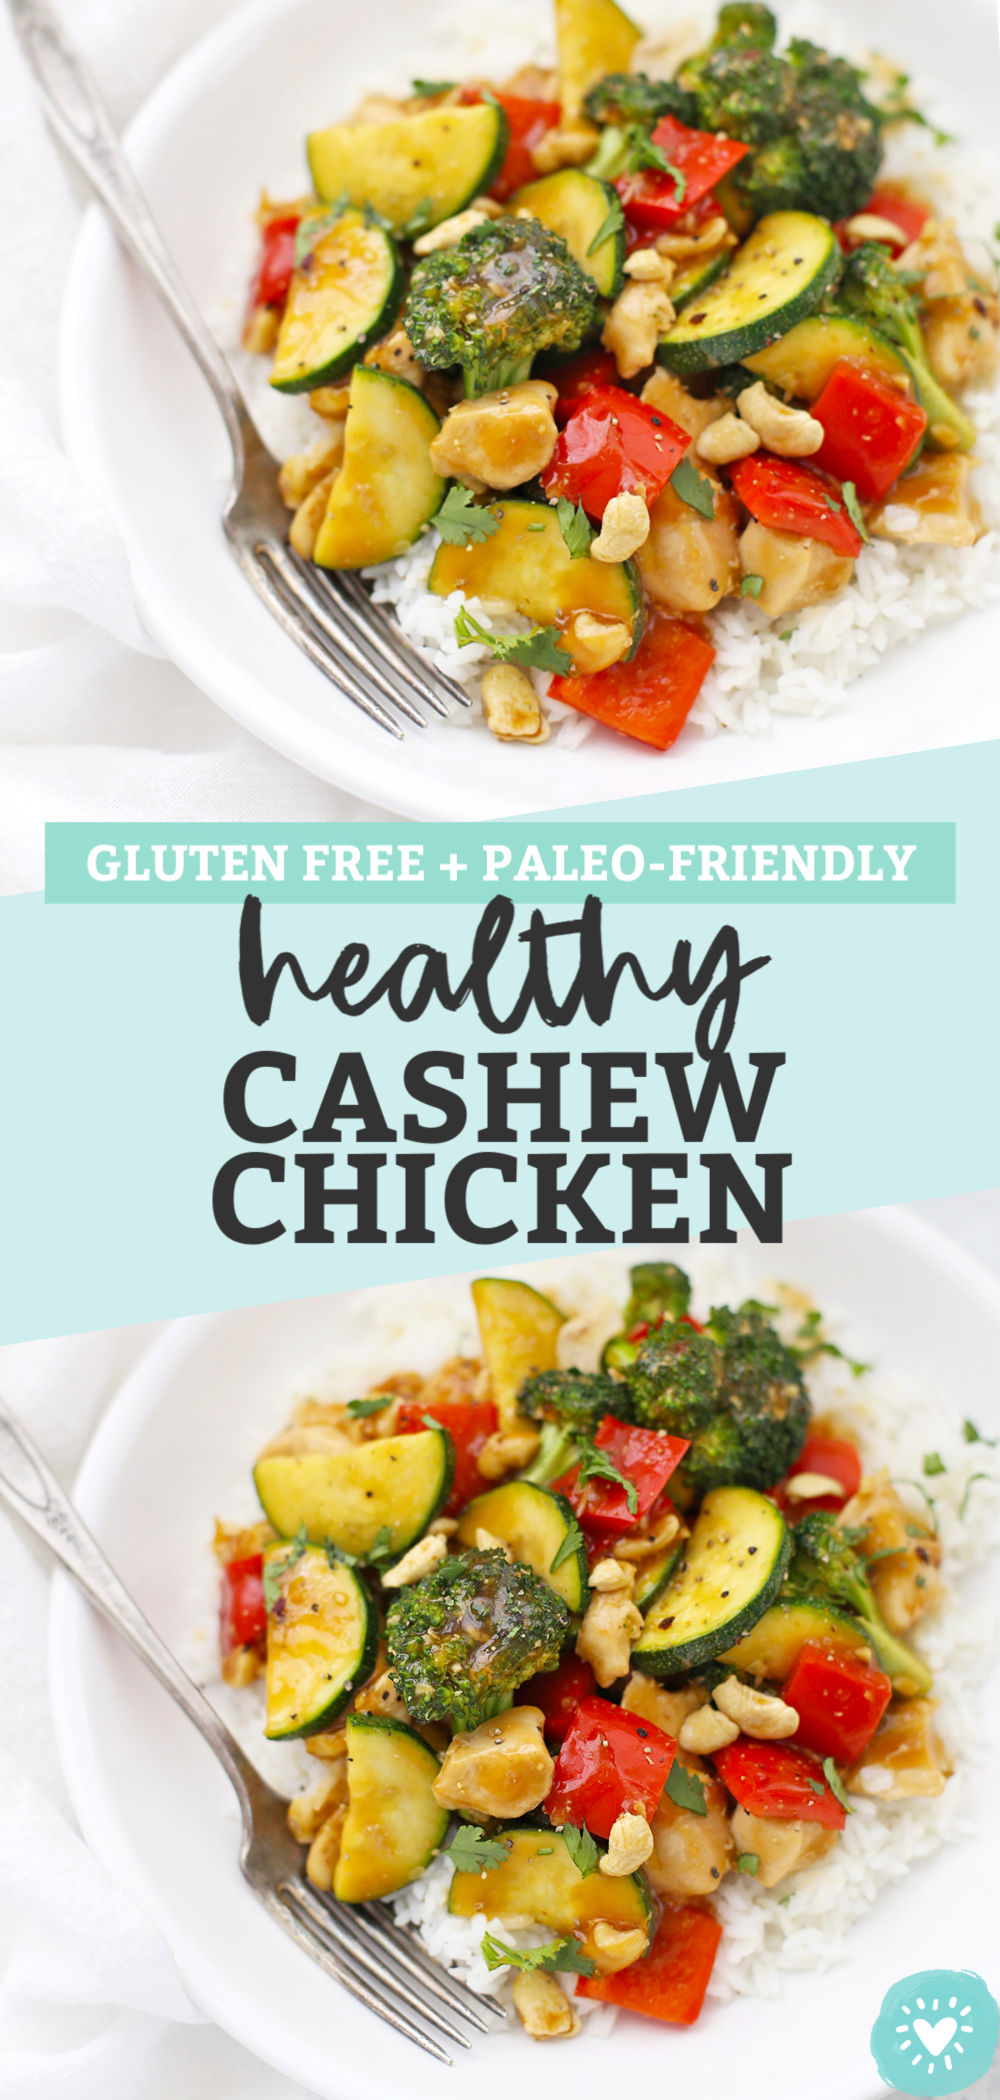 Healthy Cashew Chicken from One Lovely Life (Gluten-Free, Paleo)